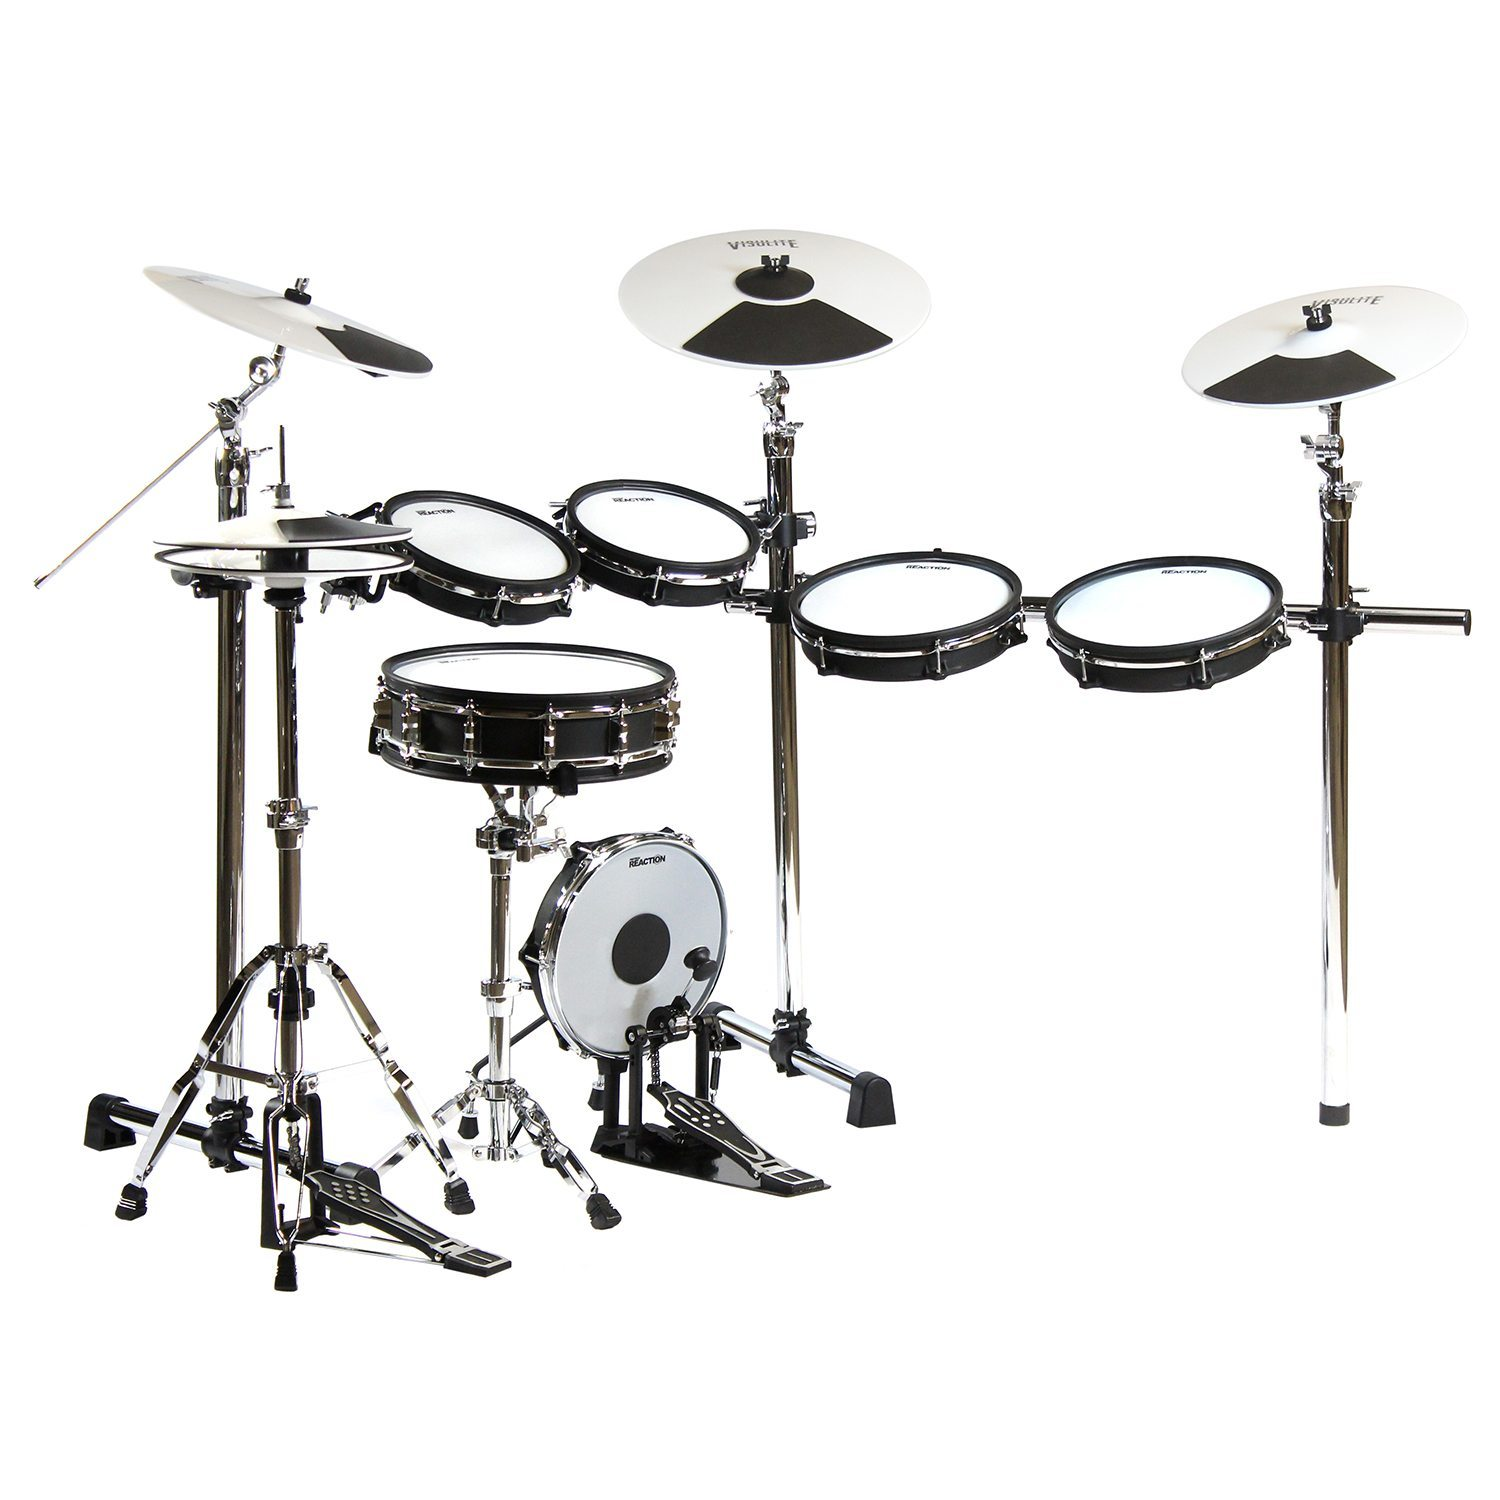 pintech pdk3000 electronic drum kit pintech percussion. Black Bedroom Furniture Sets. Home Design Ideas